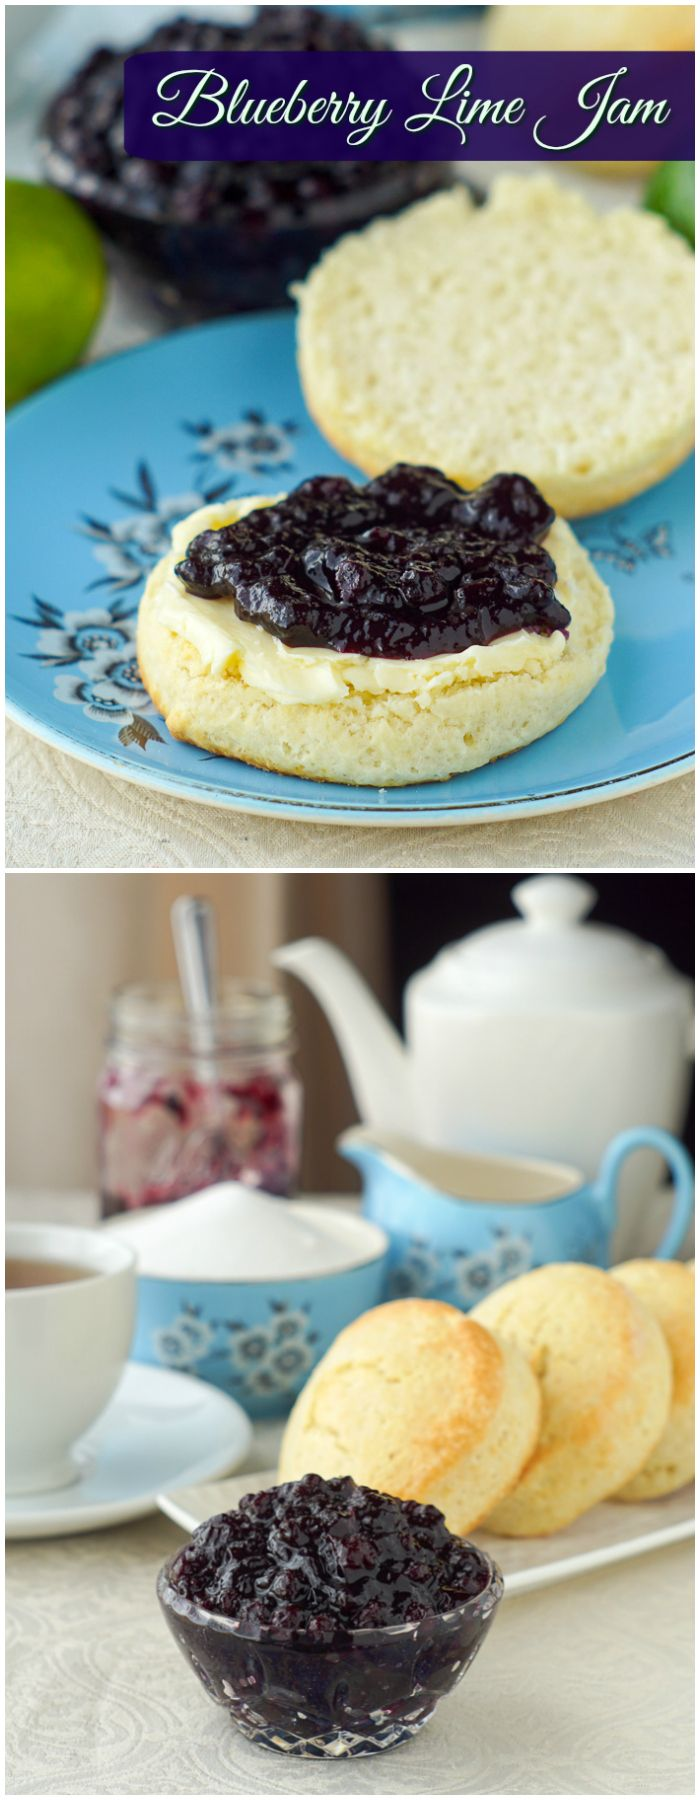 Newfoundland Blueberry Jam with lime, using low sugar pectin. Made with incredible Newfoundland wild blueberries. The hint of lime pairs beautifully with the berries and the low sugar recipe lets their natural flavour shine.